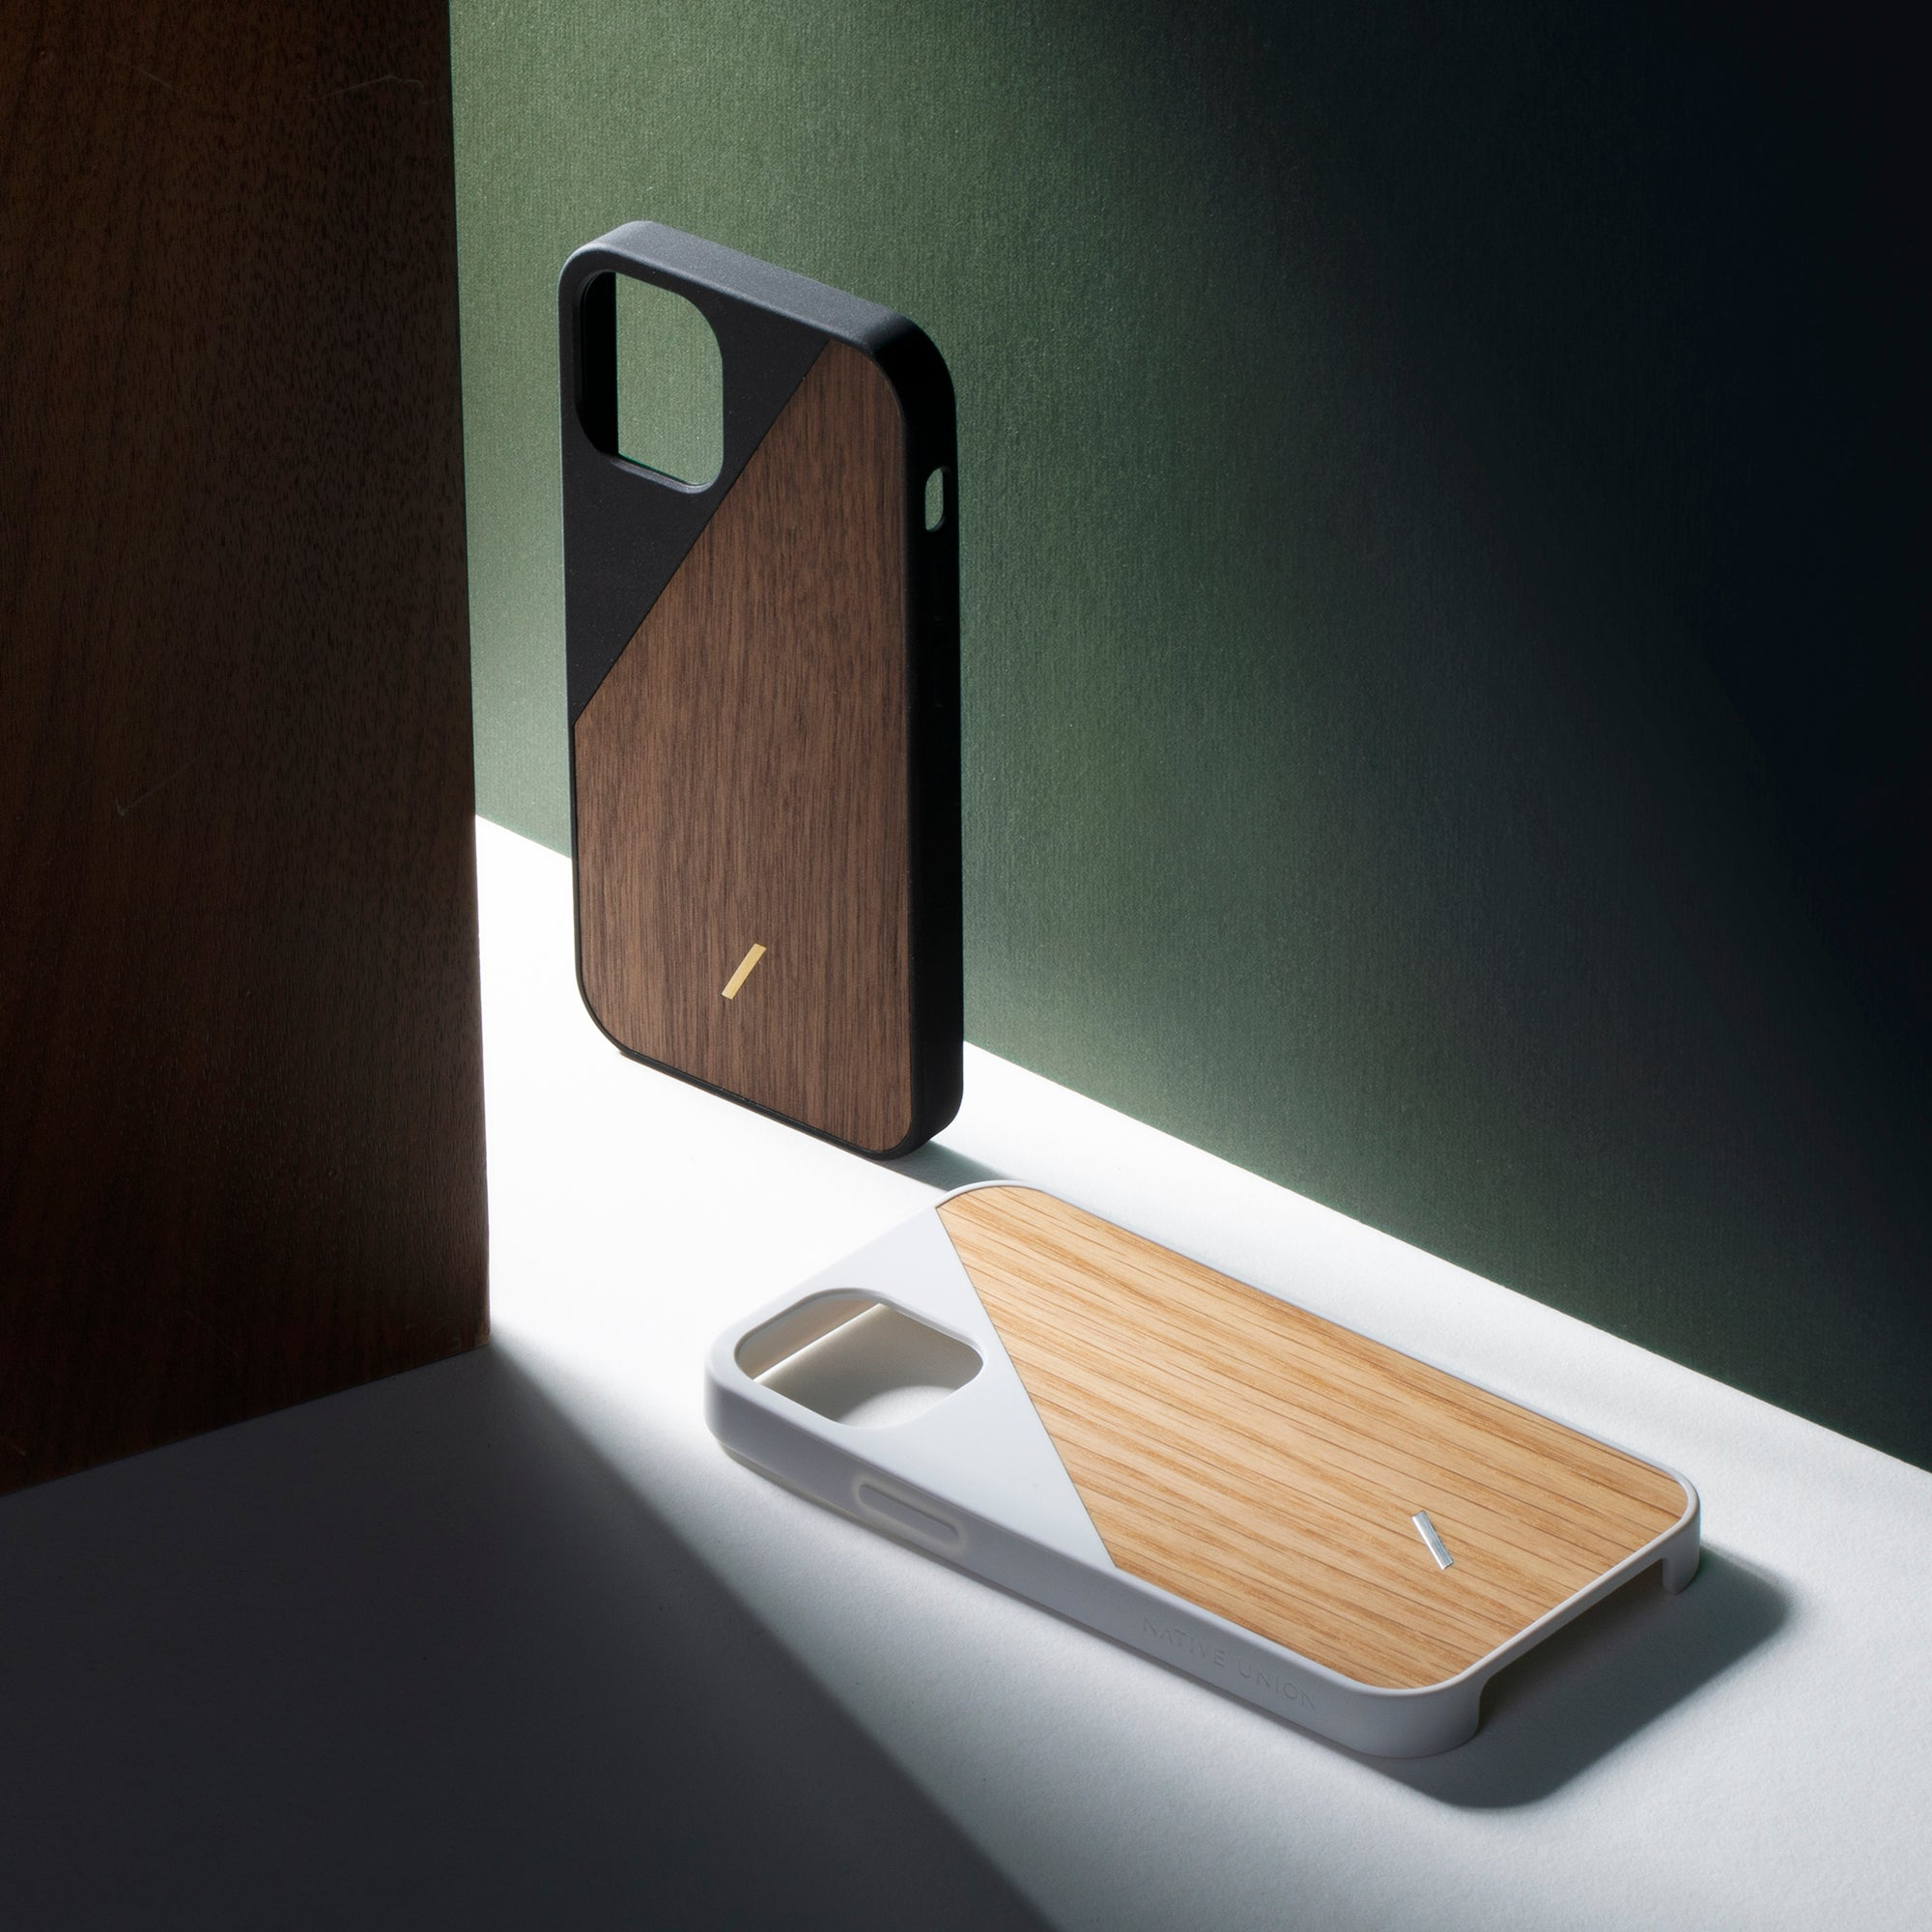 34316691046539,34316691079307,Clic Wooden (iPhone 12 Pro)